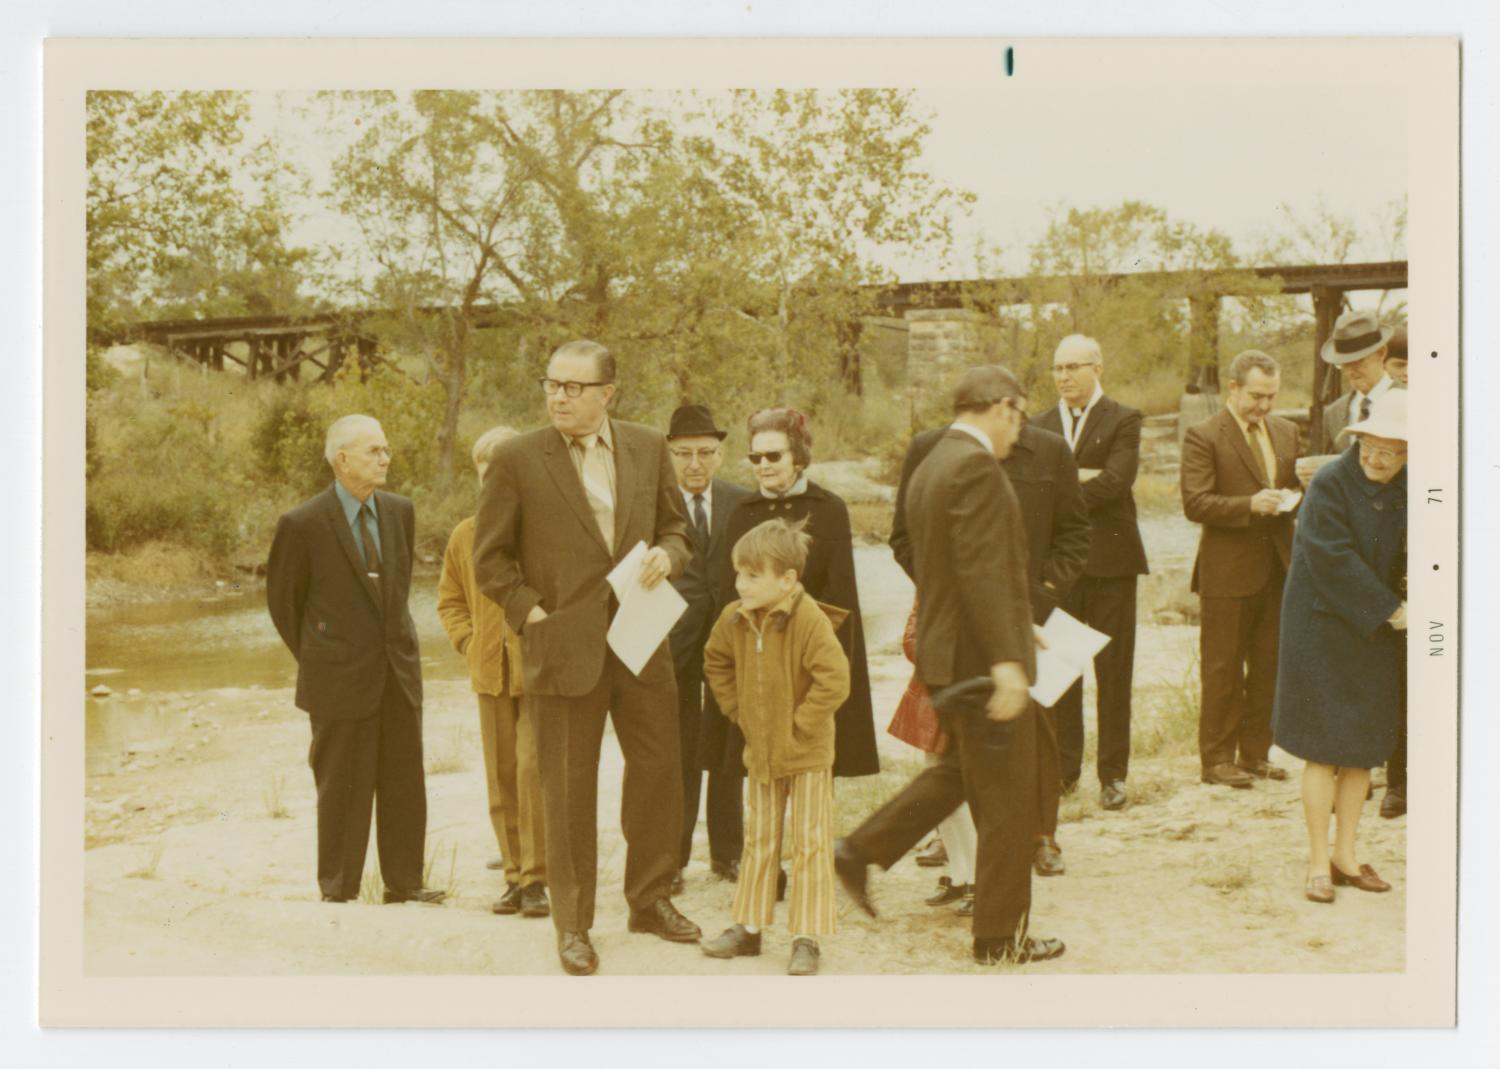 [Dedication of the Round Rock Marker], Photograph taken facing west of a group of individuals gathered around for a historic marker dedication ceremony for Round Rock in Brushy Creek. A boy in striped pants can be seen in the front of the group, standing with his hands in his pockets. A railroad bridge can be seen in the background, and the creek can be seen to left.,